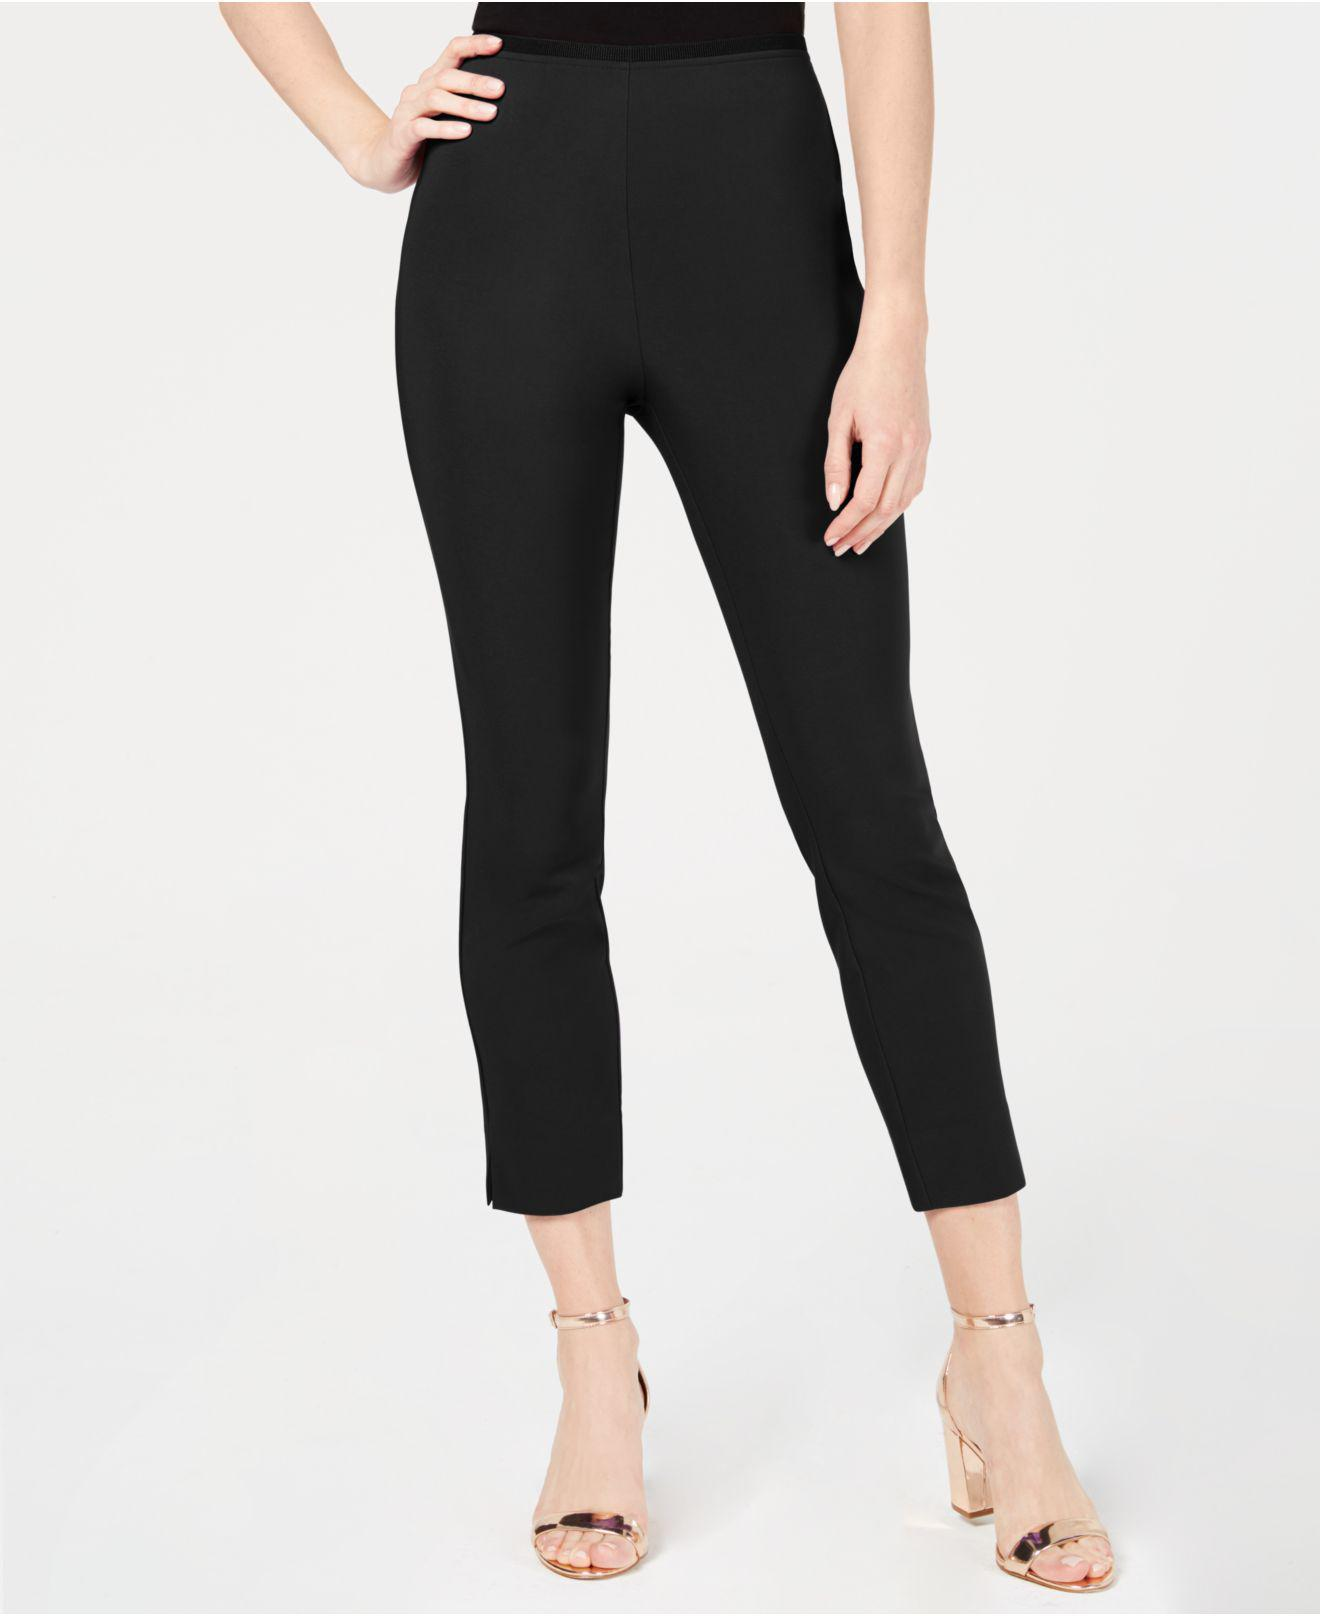 1466f278be4ce Lyst - Inc International Concepts I.n.c. Pull-on Skinny Pants ...